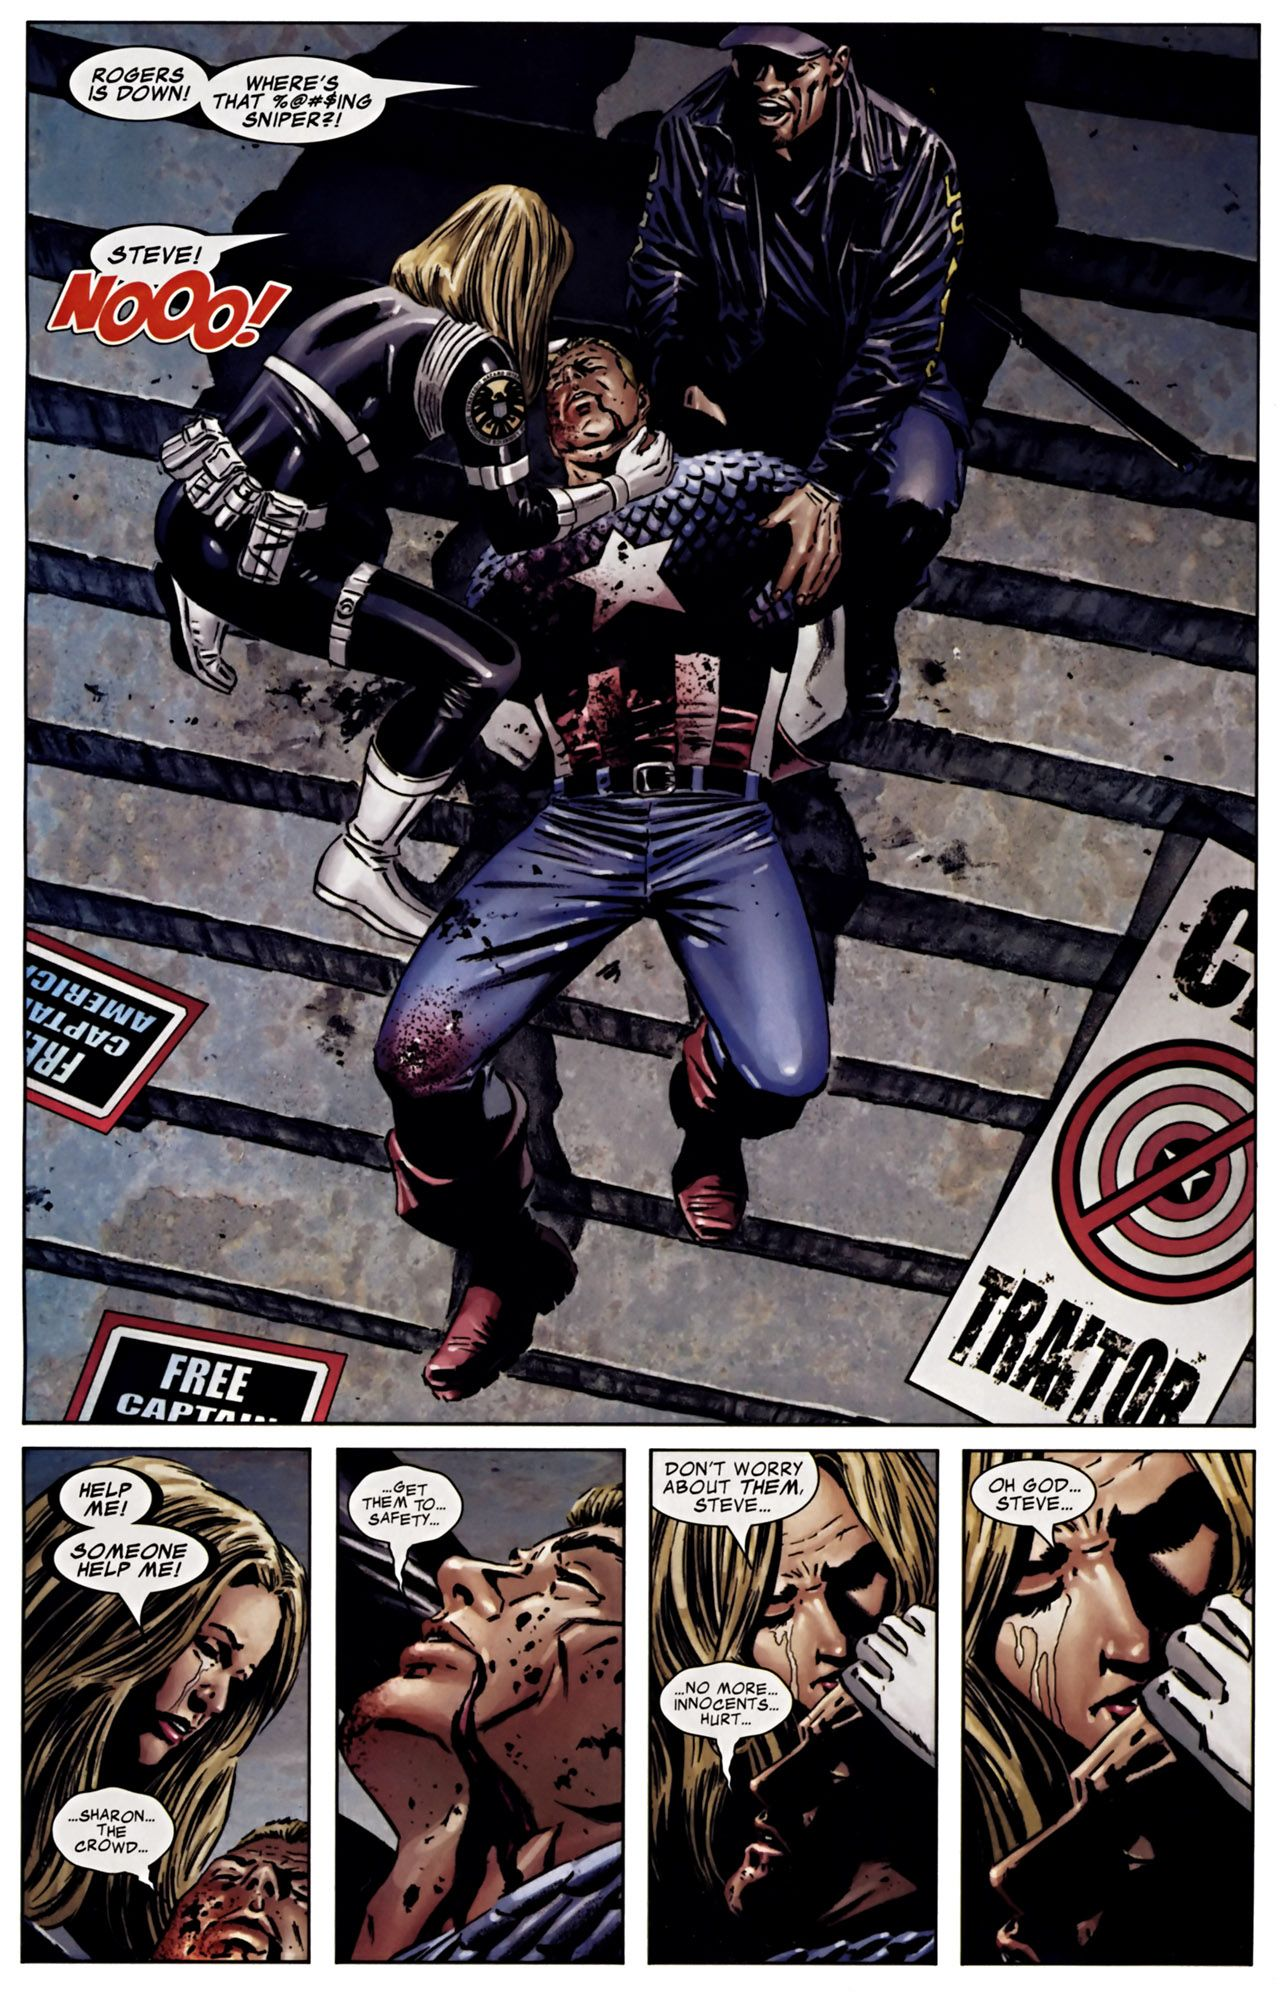 Image result for Captain America Vol. 5 #25 Sharon...the crowd...get them to...safety...no more...innocents...hurt...